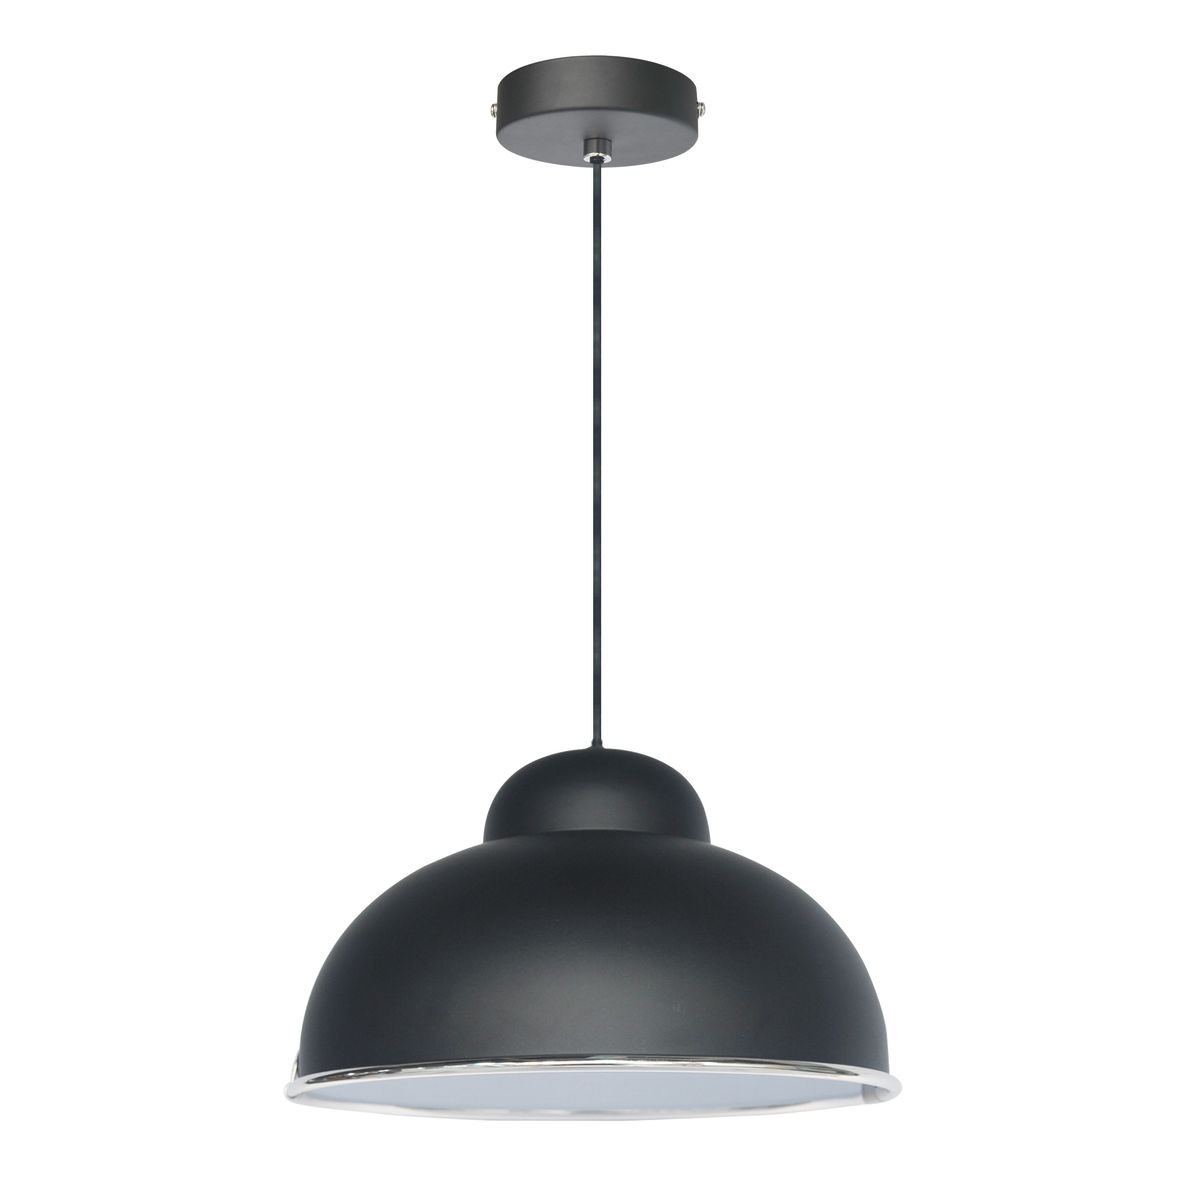 Awesome lampadari cucina leroy merlin contemporary home for Lampade da esterno leroy merlin